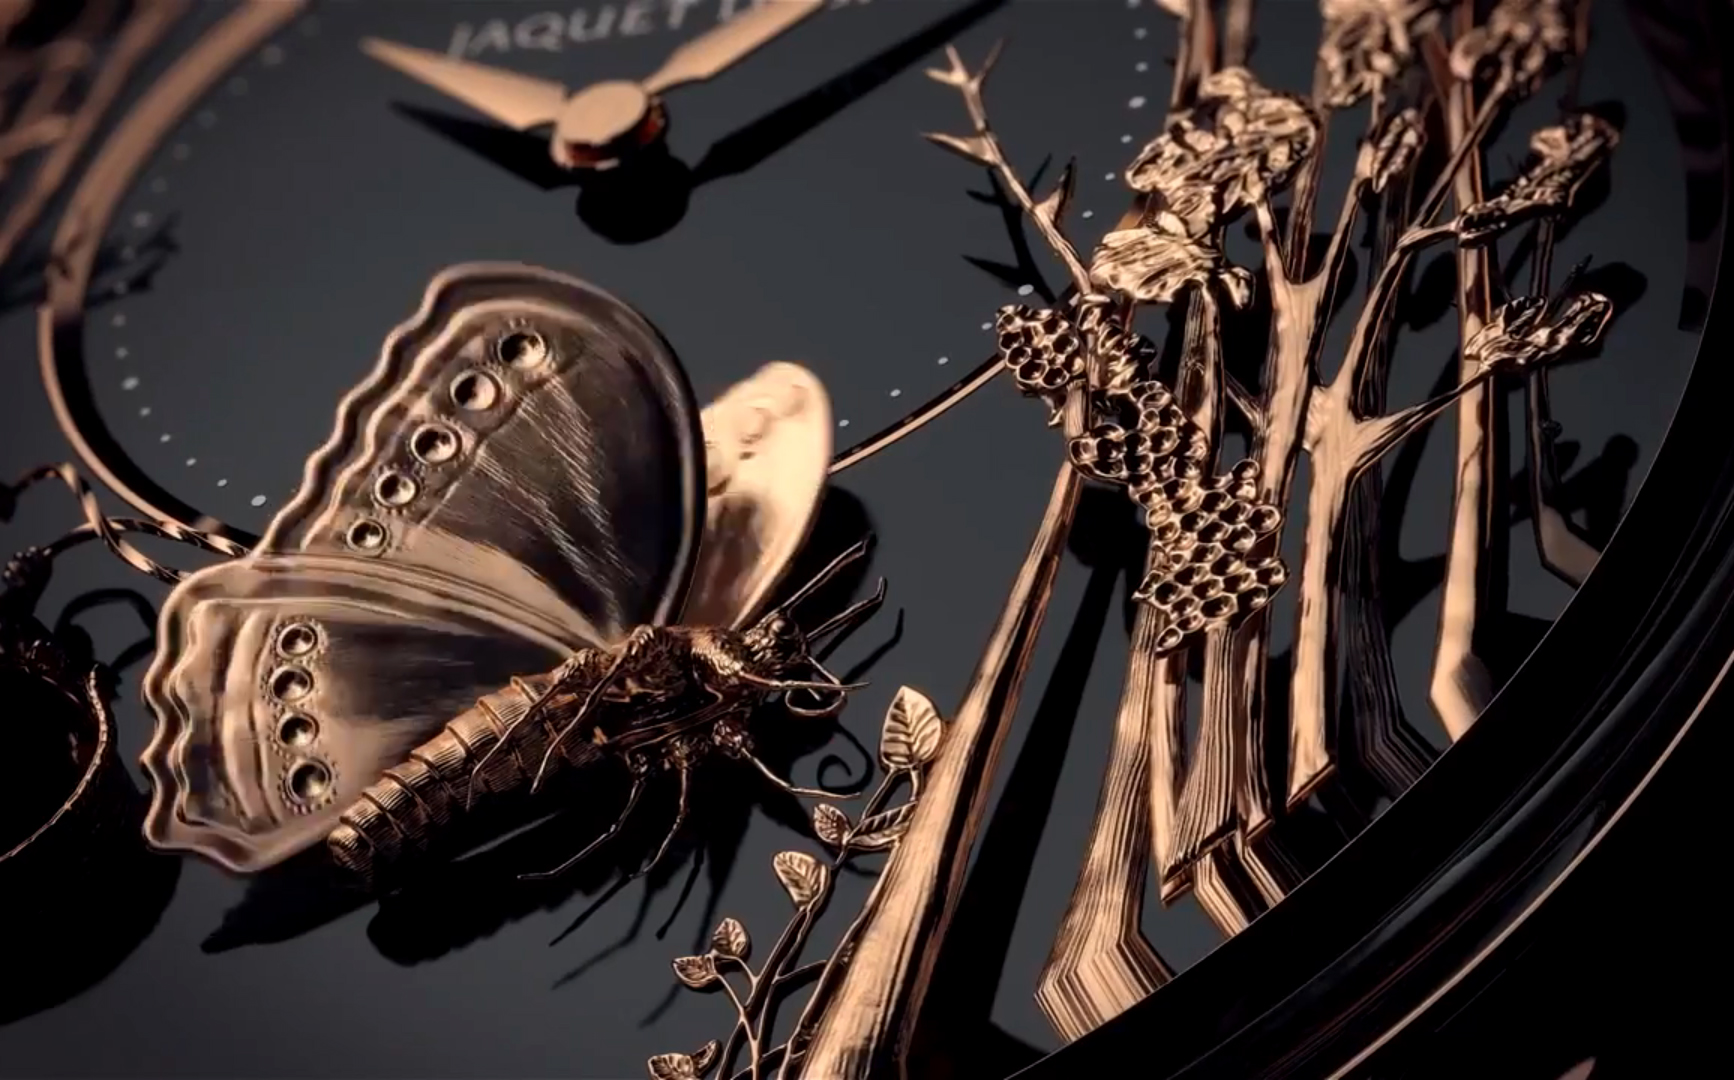 Loving Butterfly Automaton / фото © Jaquet Droz